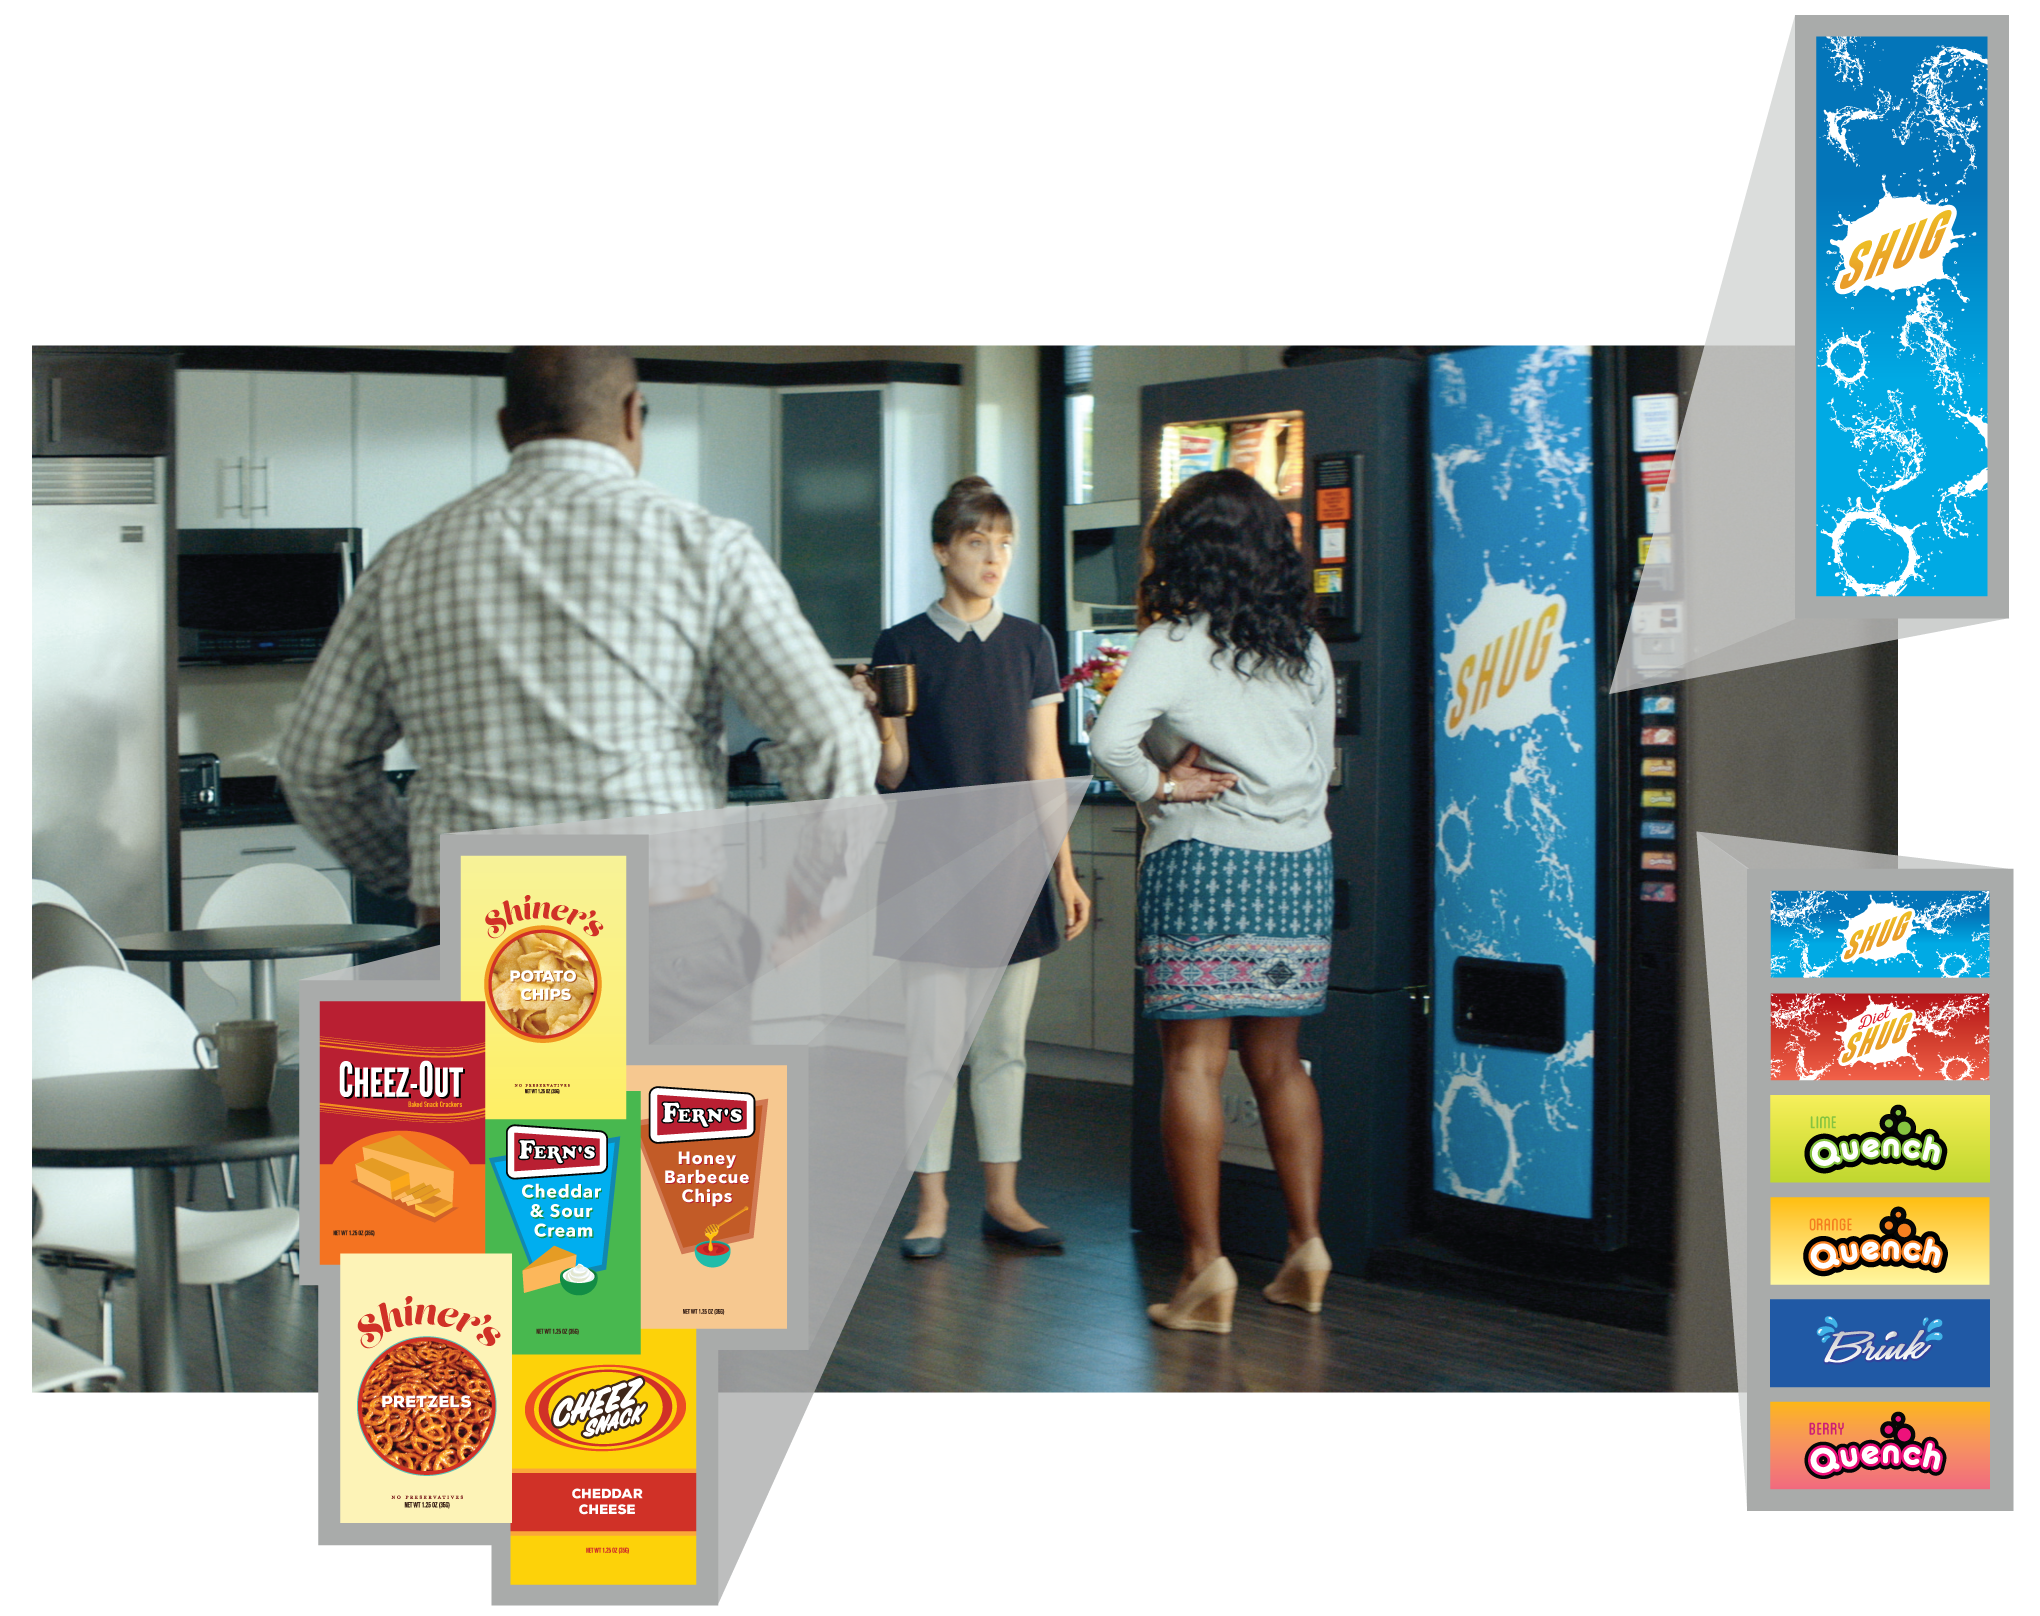 I created and adapted the graphics for the vending machine foods shown here.